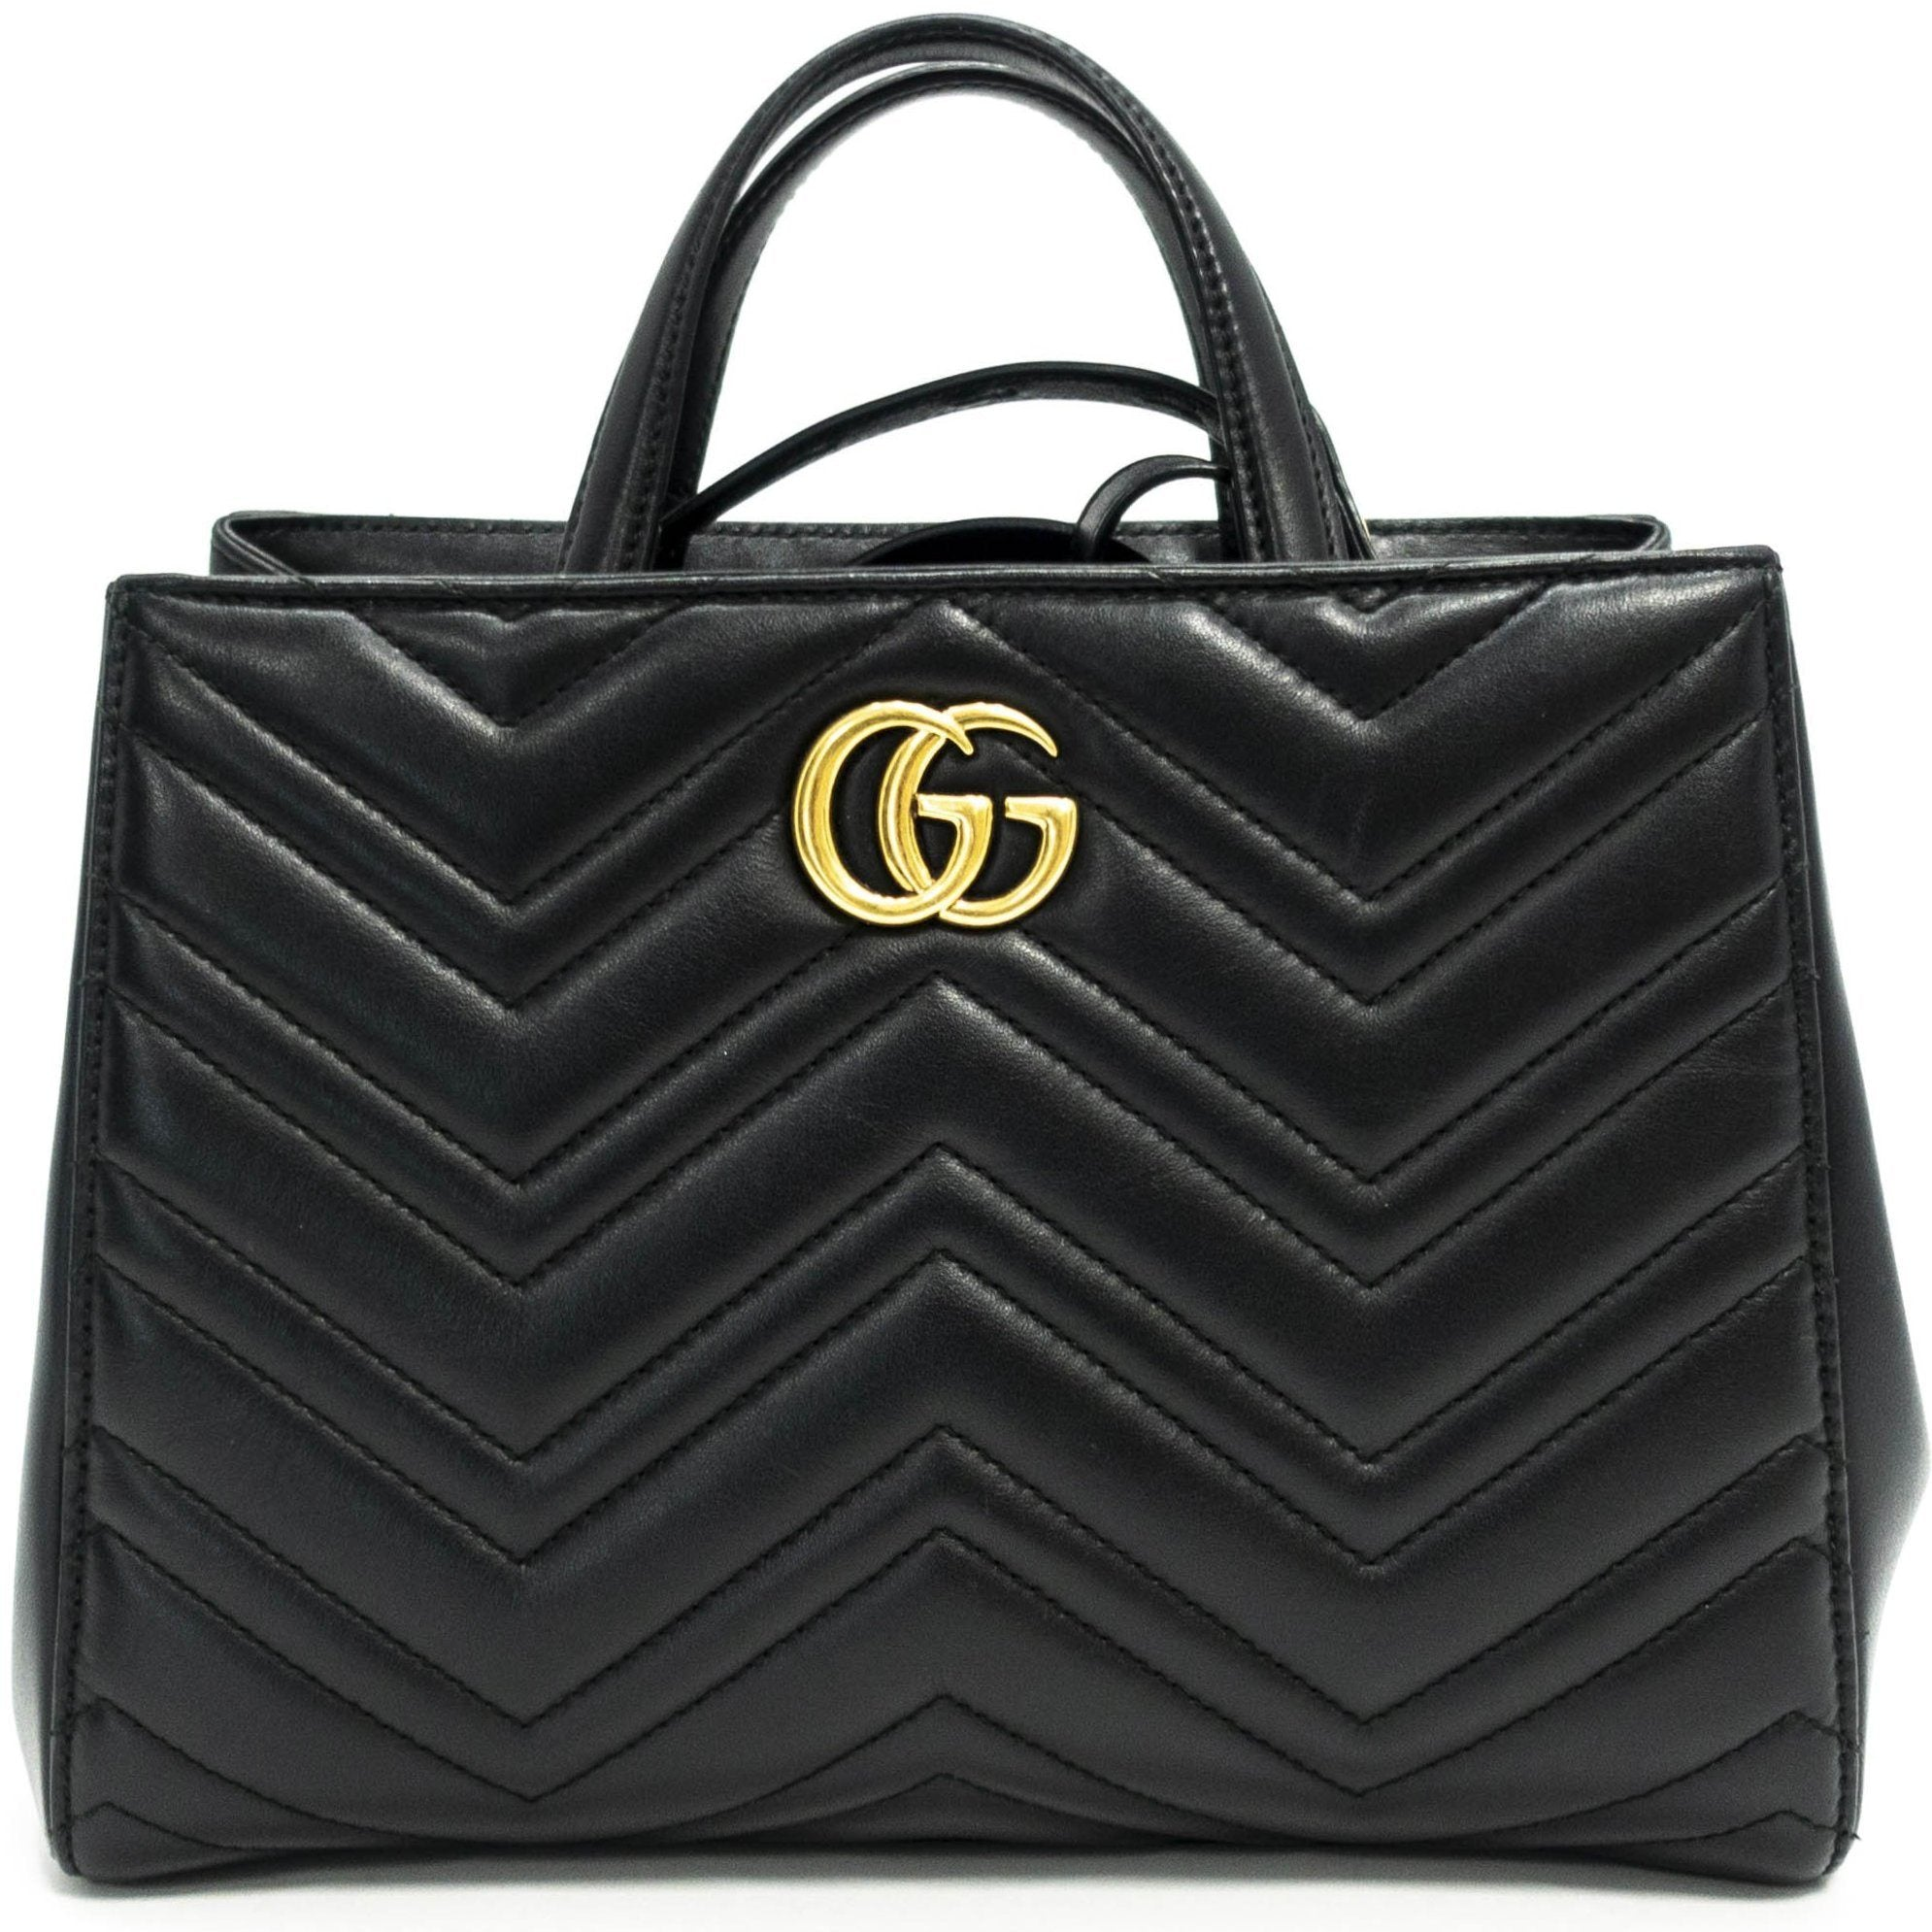 8fc7385f39a6 Gucci GG Marmont Small Matelasse Top Handle Bag - Oliver Jewellery